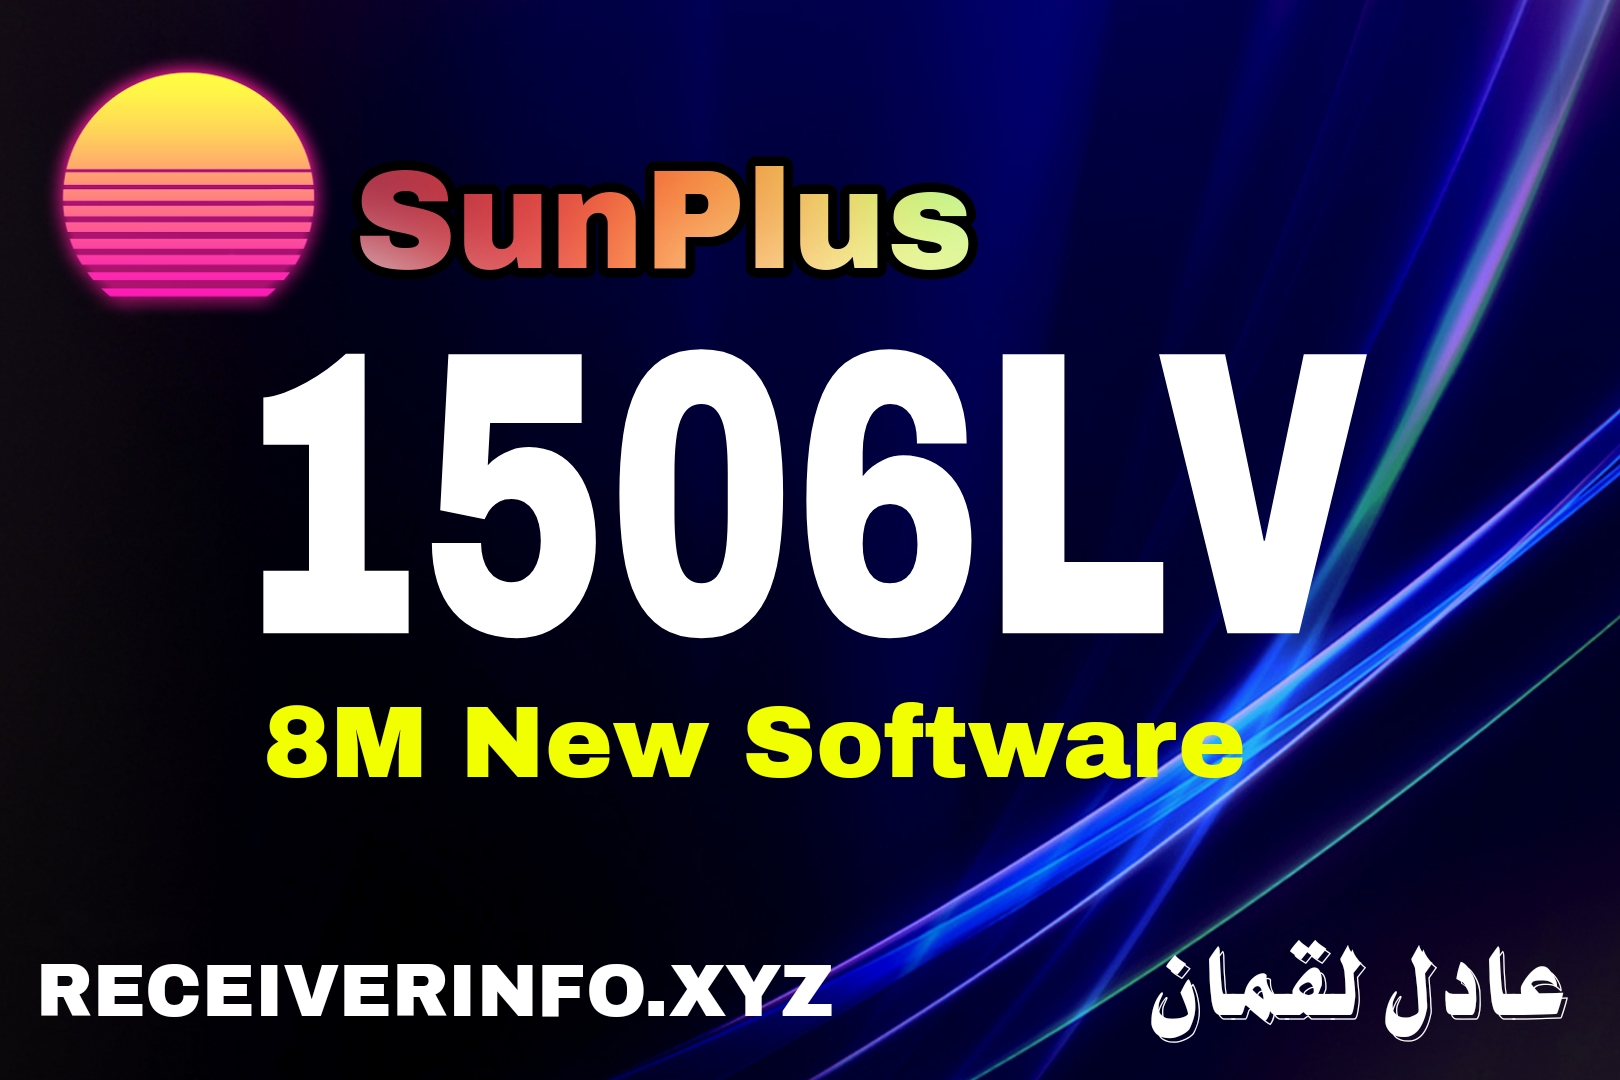 Sunplus Chipset 1506LV Hd Receiver All Software With Full Specification